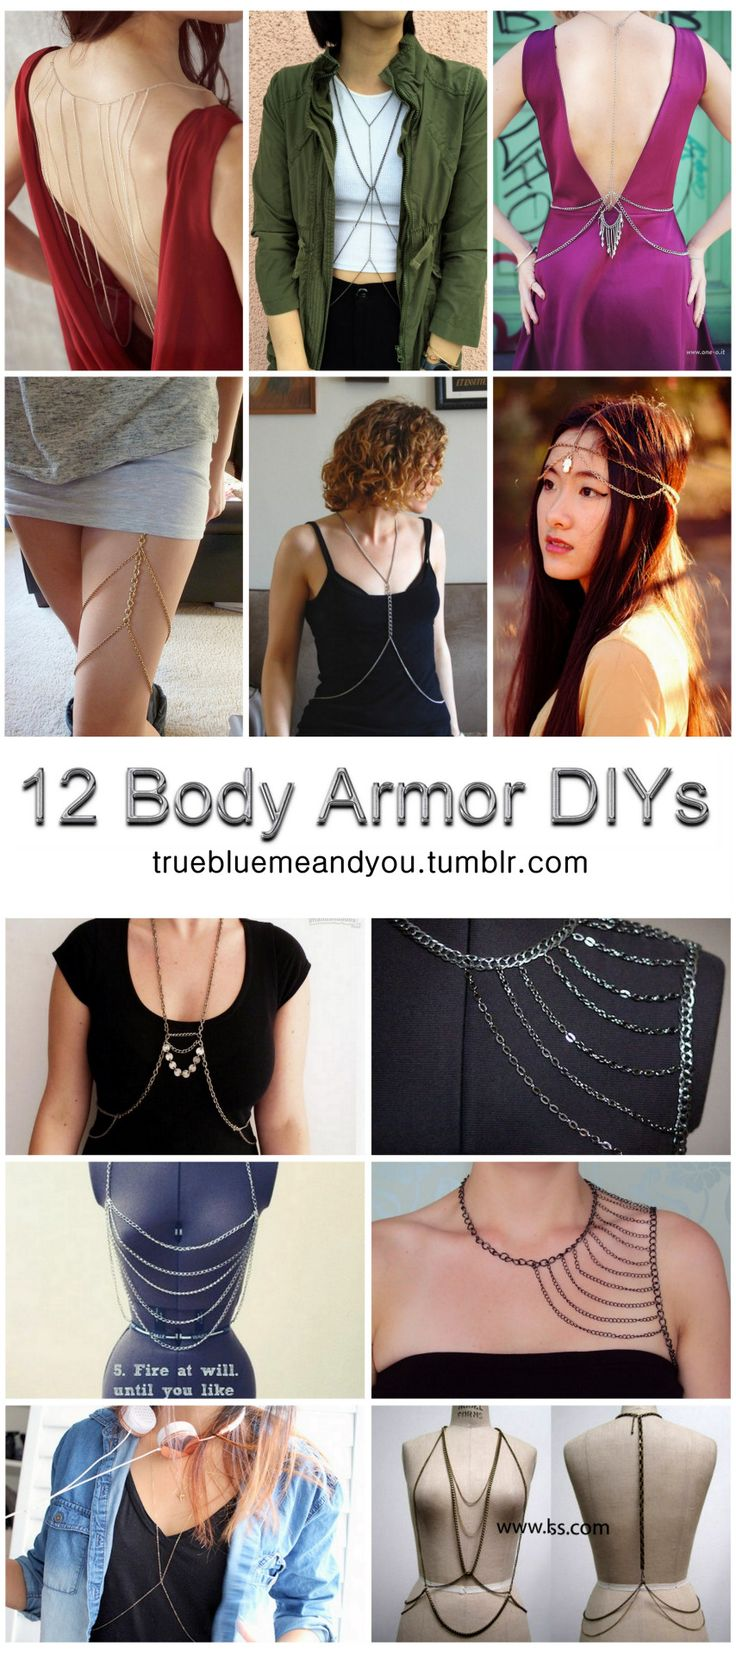 12 Body Armor DIYs Roundup from truebluemeandyou on Tumblr.Body Armor Jewelry is still trending, but I haven't seen many DIYs for body chains, harnesses,or headpieces on DIY blogs. The jewelry itself is really cheap to make, especially if you find the right chain and can buy it by the foot.For pages of DIY  Chain Handpieces   or Panjas go HERE.DIY Drama in the Back Harness Necklace Tutorial from Elle Frost here. Excellent tutorial because of a good PDF template for the harness.DIY Body…